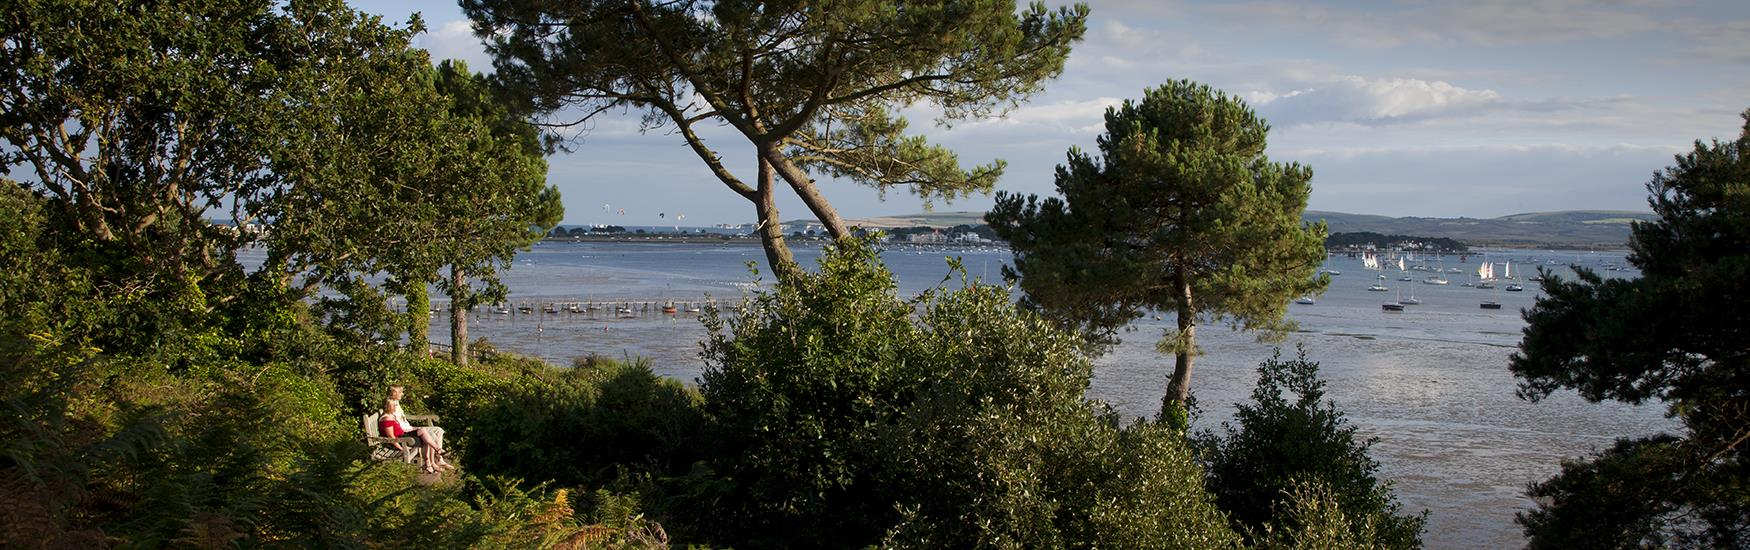 Explore the area, discover Poole's treasures